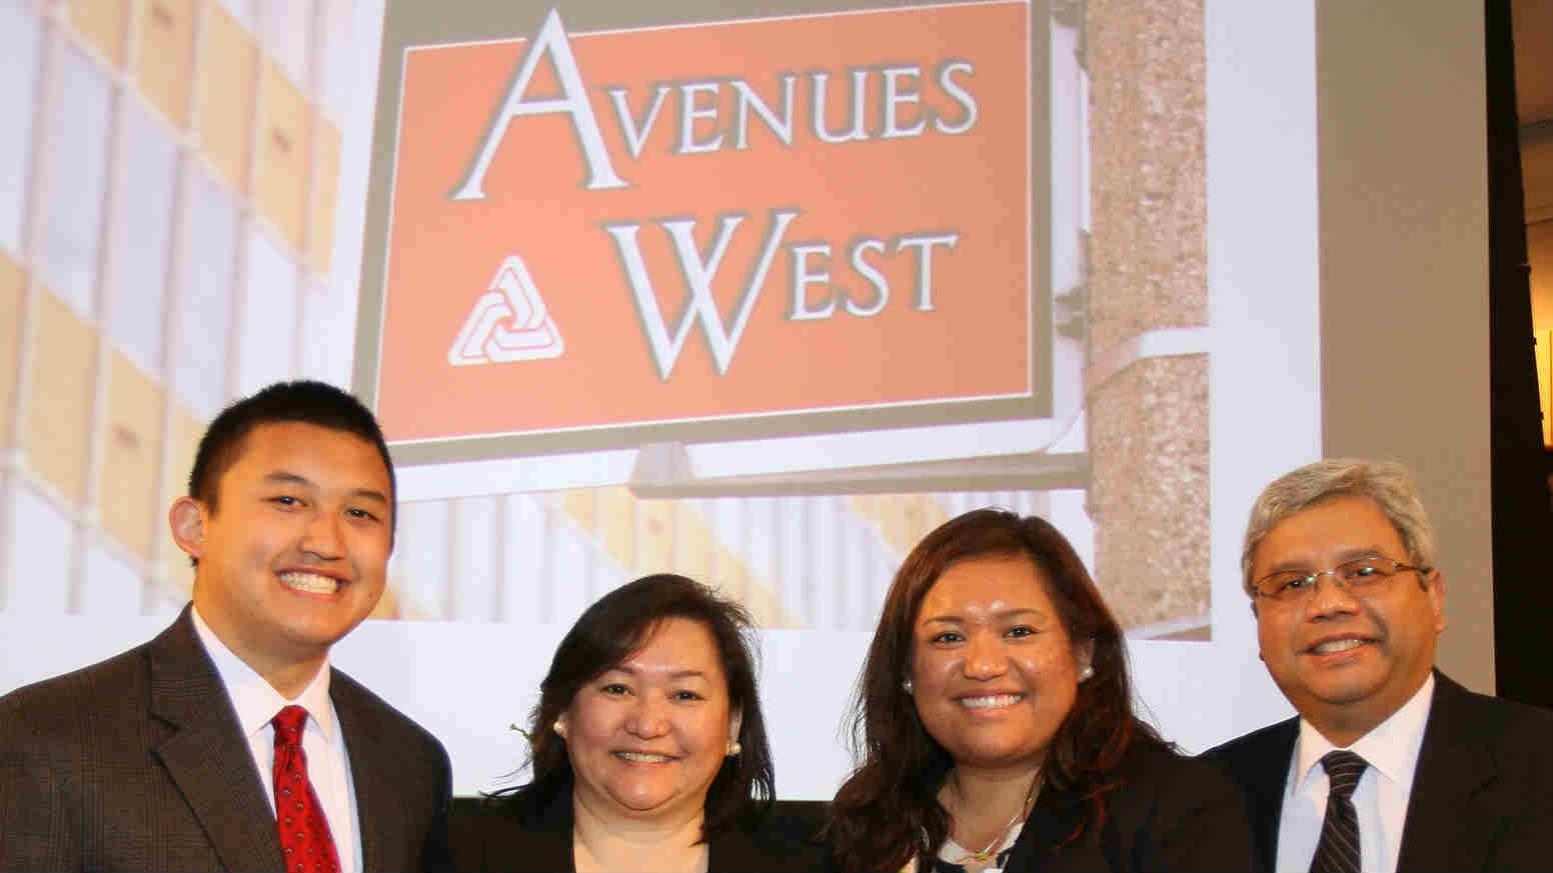 avenues west gaining momentum in revitalizing milwaukee u0027s west side